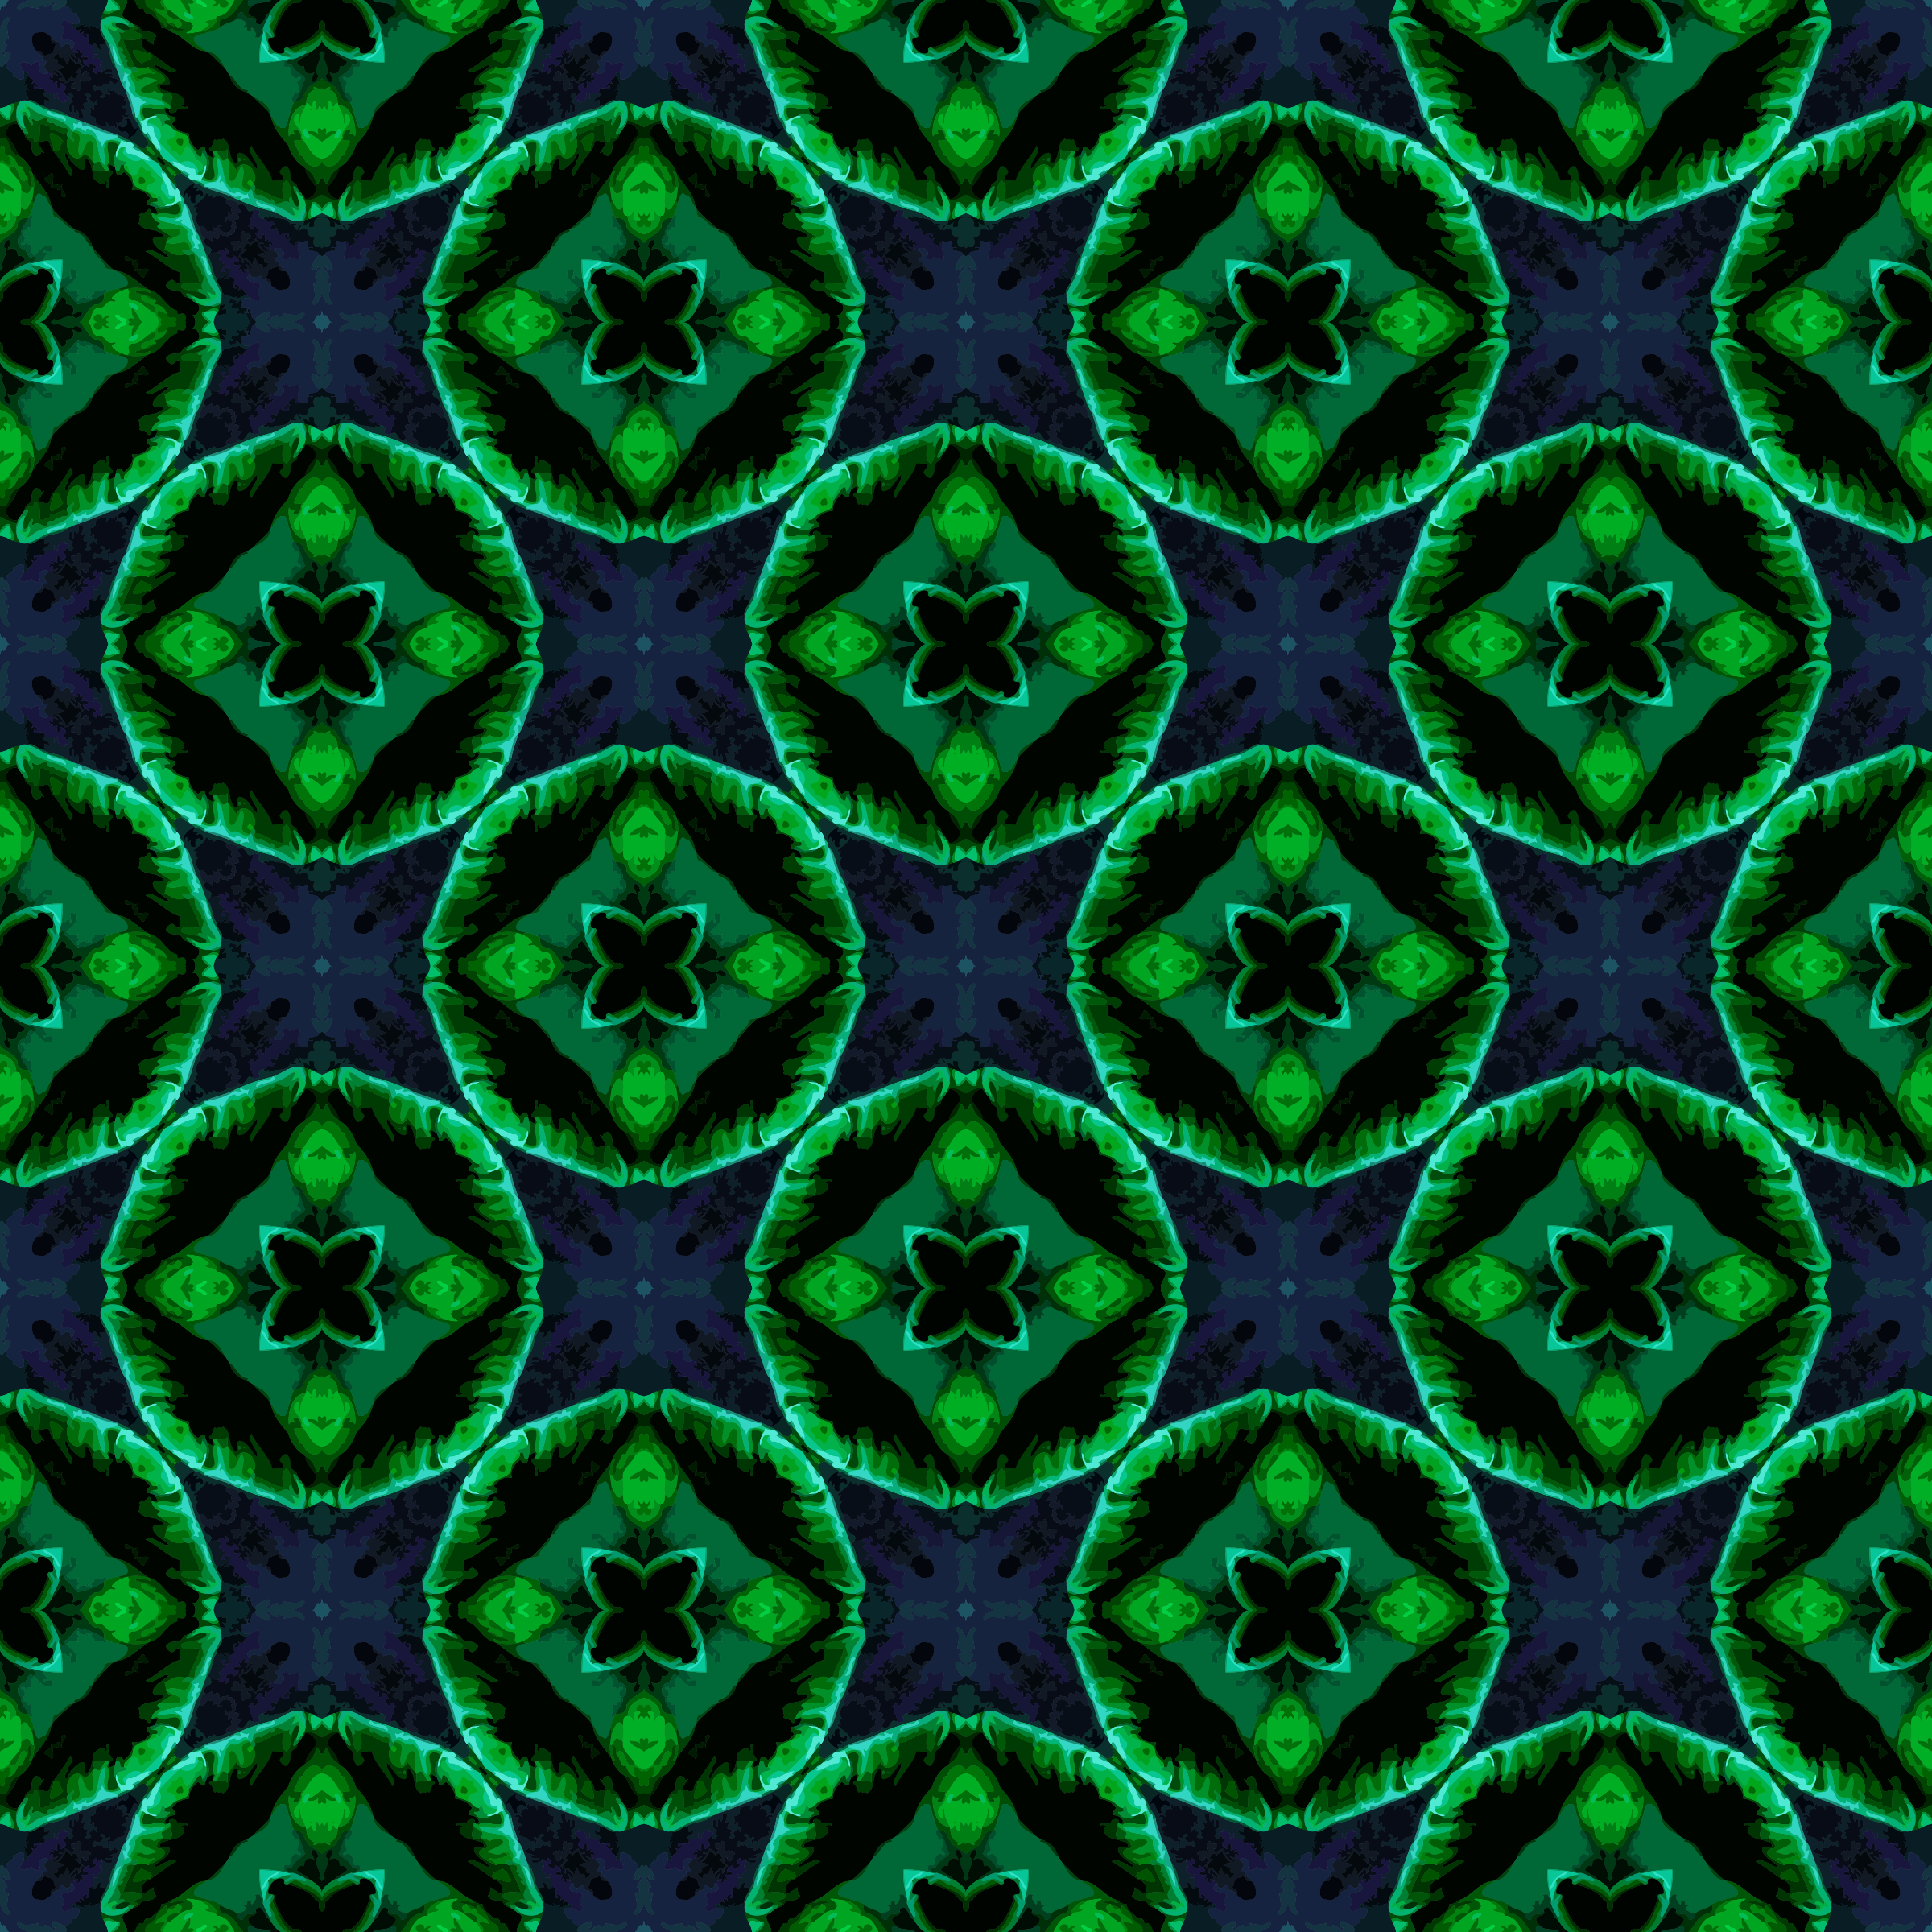 Background pattern 142 (colour 2) by Firkin